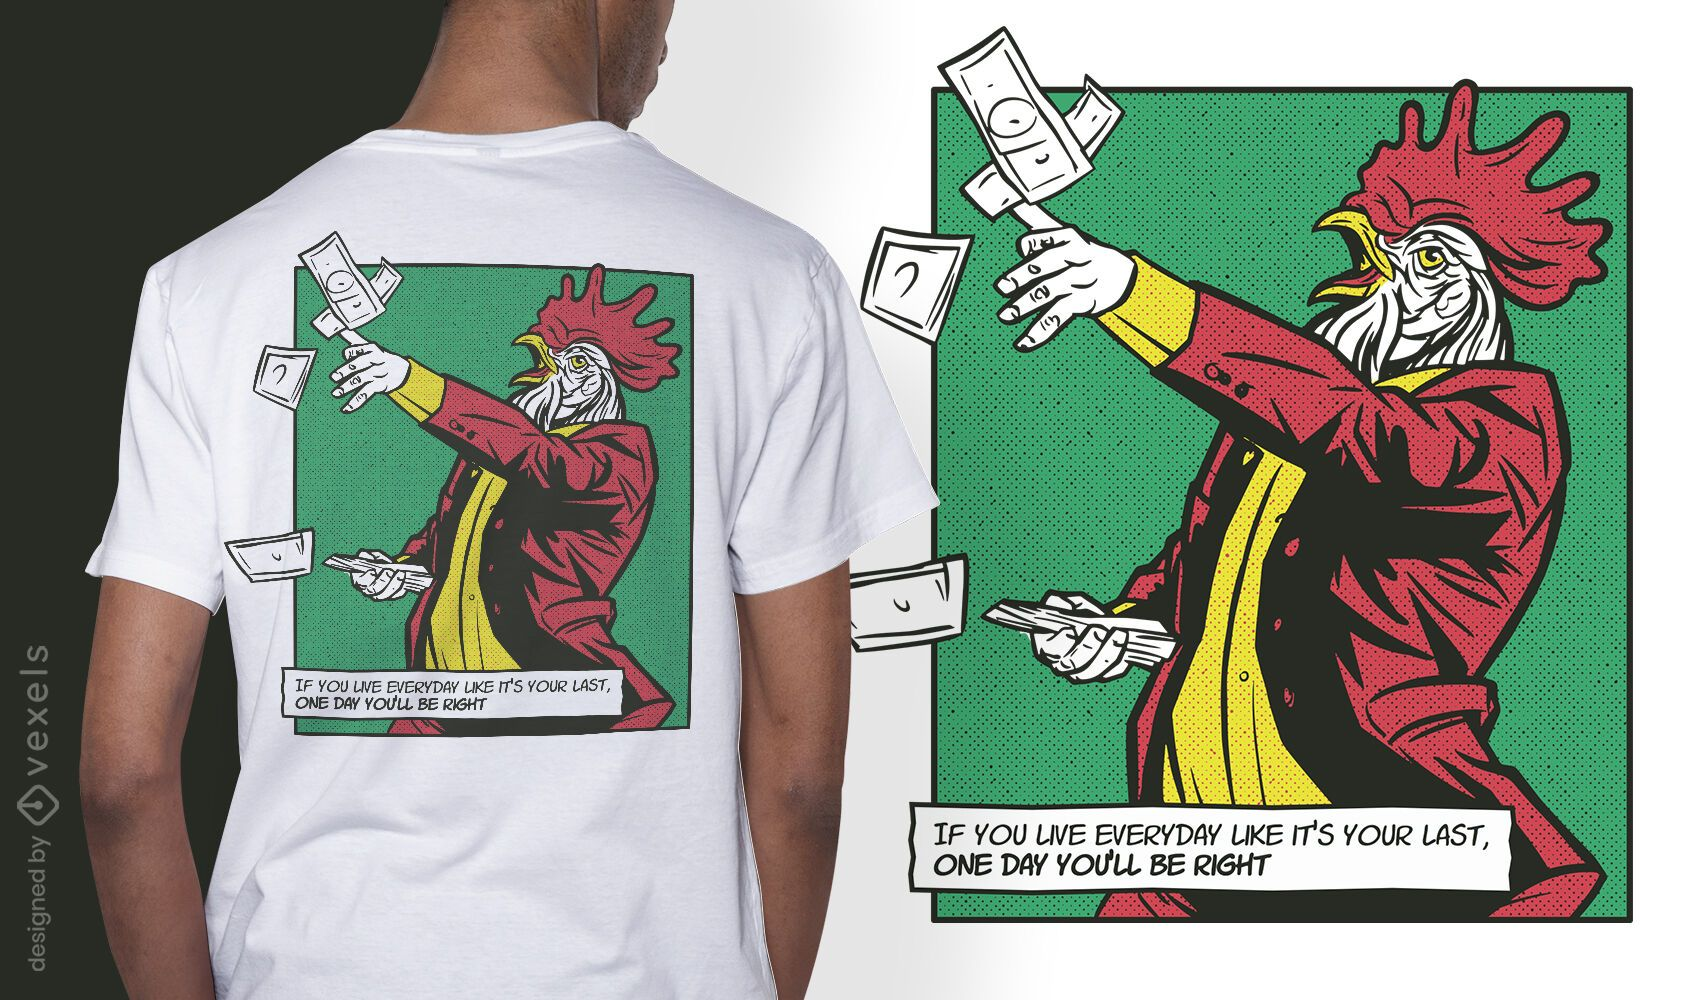 Rich rooster animal comic t-shirt design